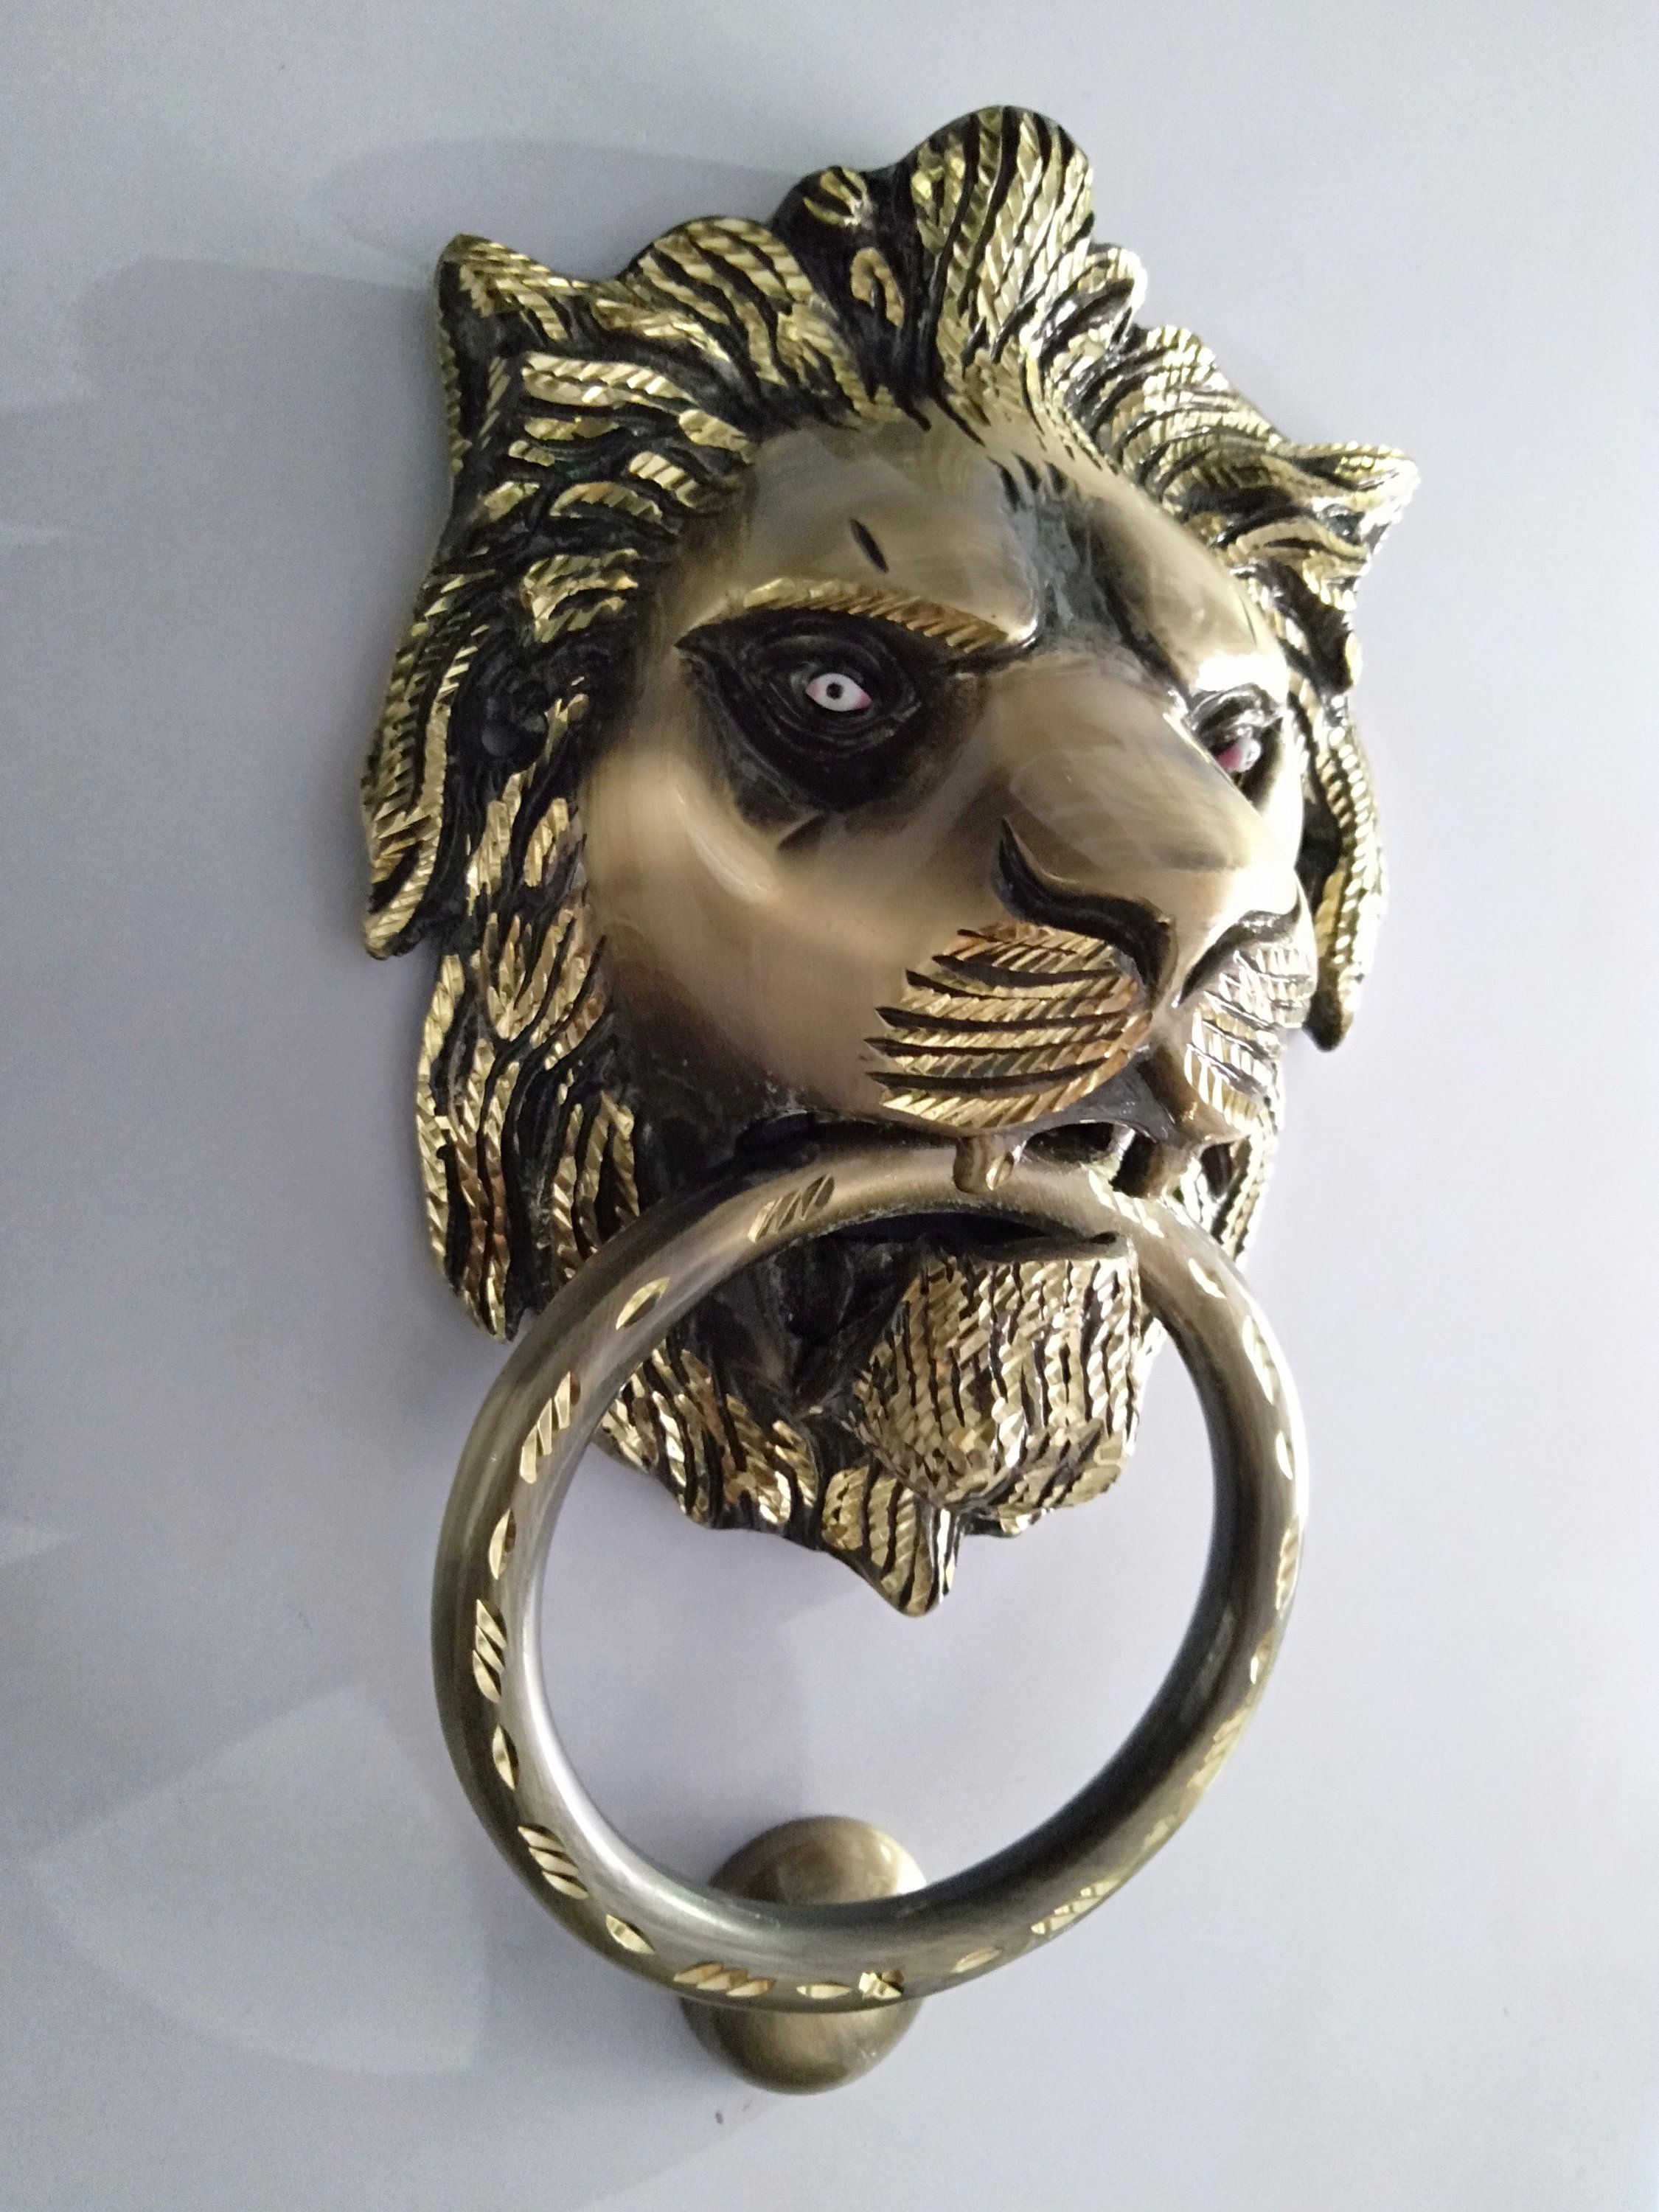 Classical Large Lion Head Door Knocker In A Unique Antique Bronze Finishing With White Lion Eyes On A Solid Brass Base Crafted In India In 2020 With Images Unique Antiques Largest